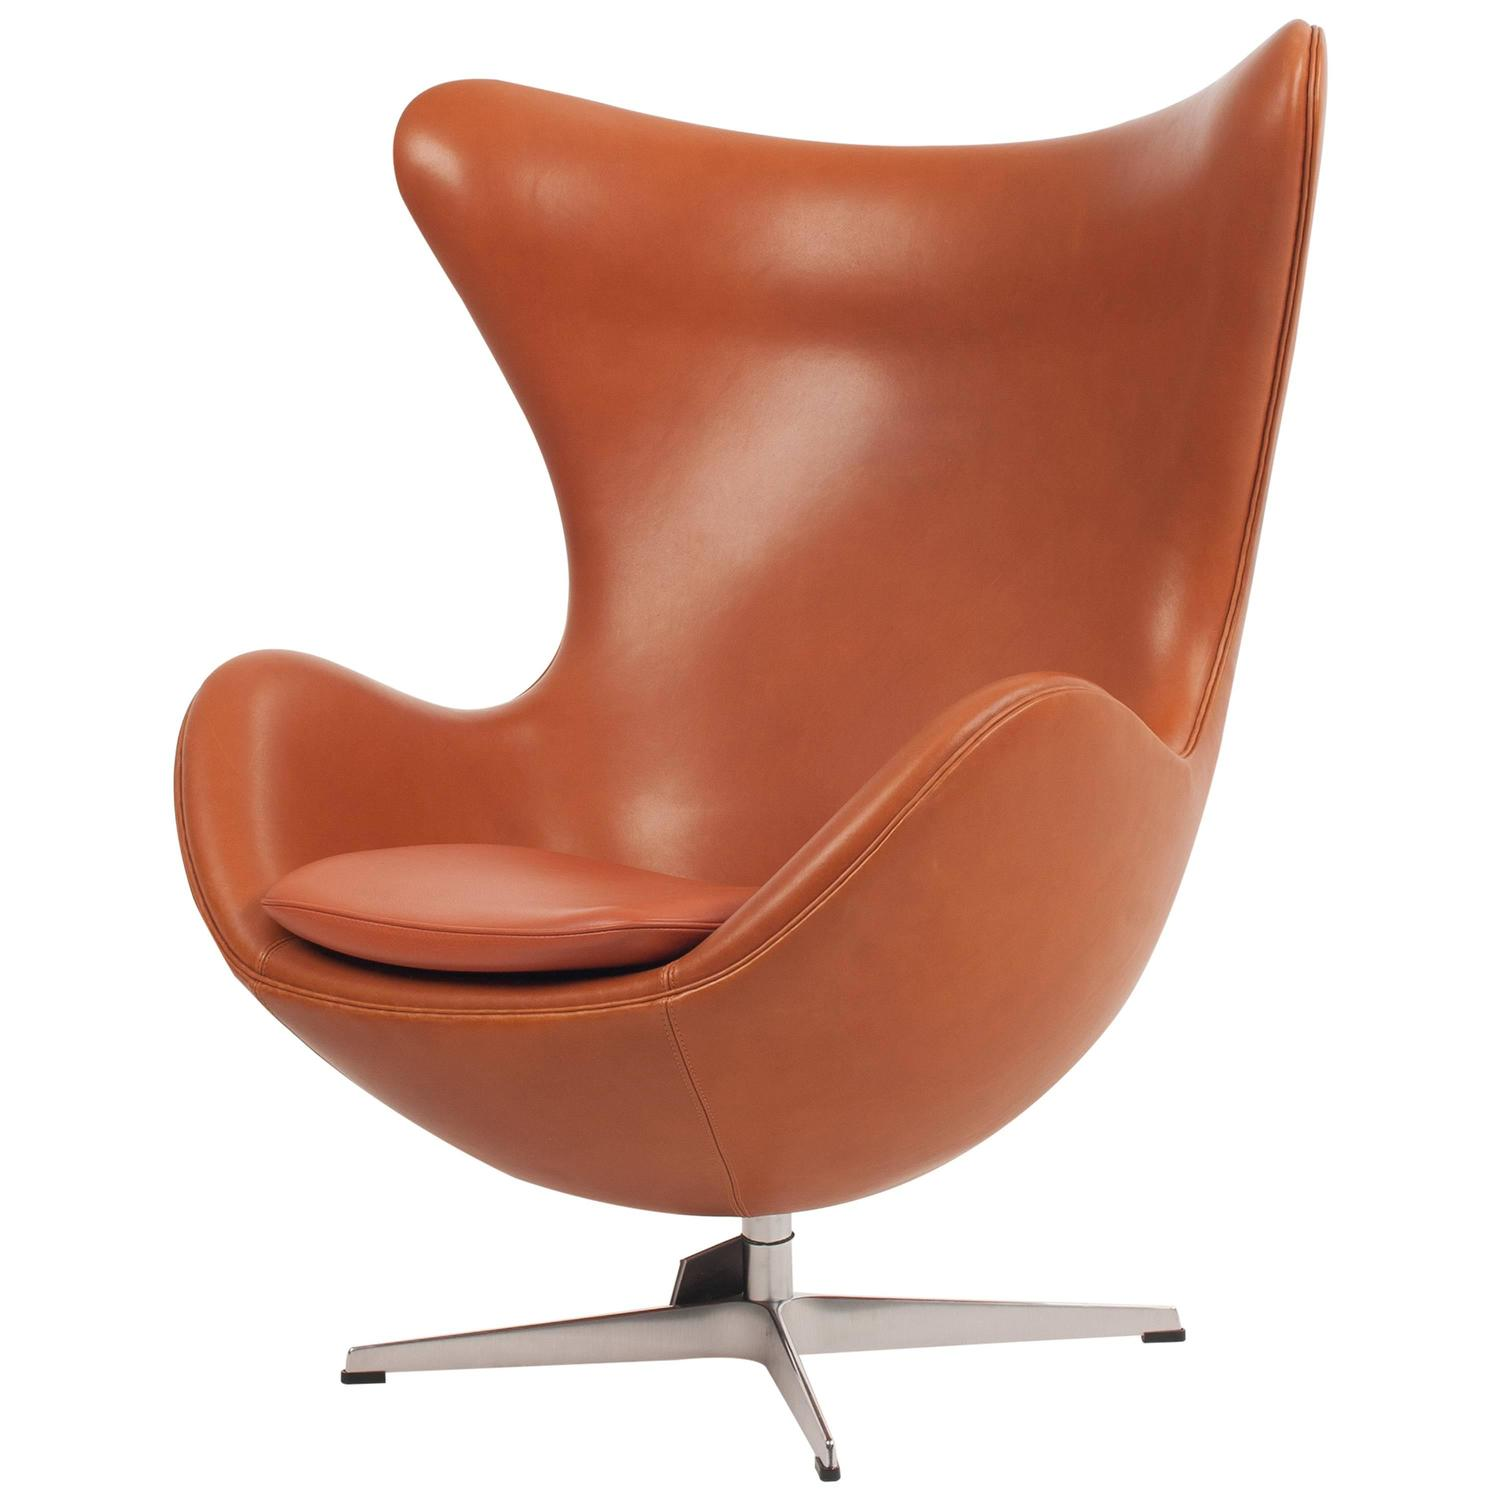 arne jacobsen egg chair in walnut elegance soft leather. Black Bedroom Furniture Sets. Home Design Ideas